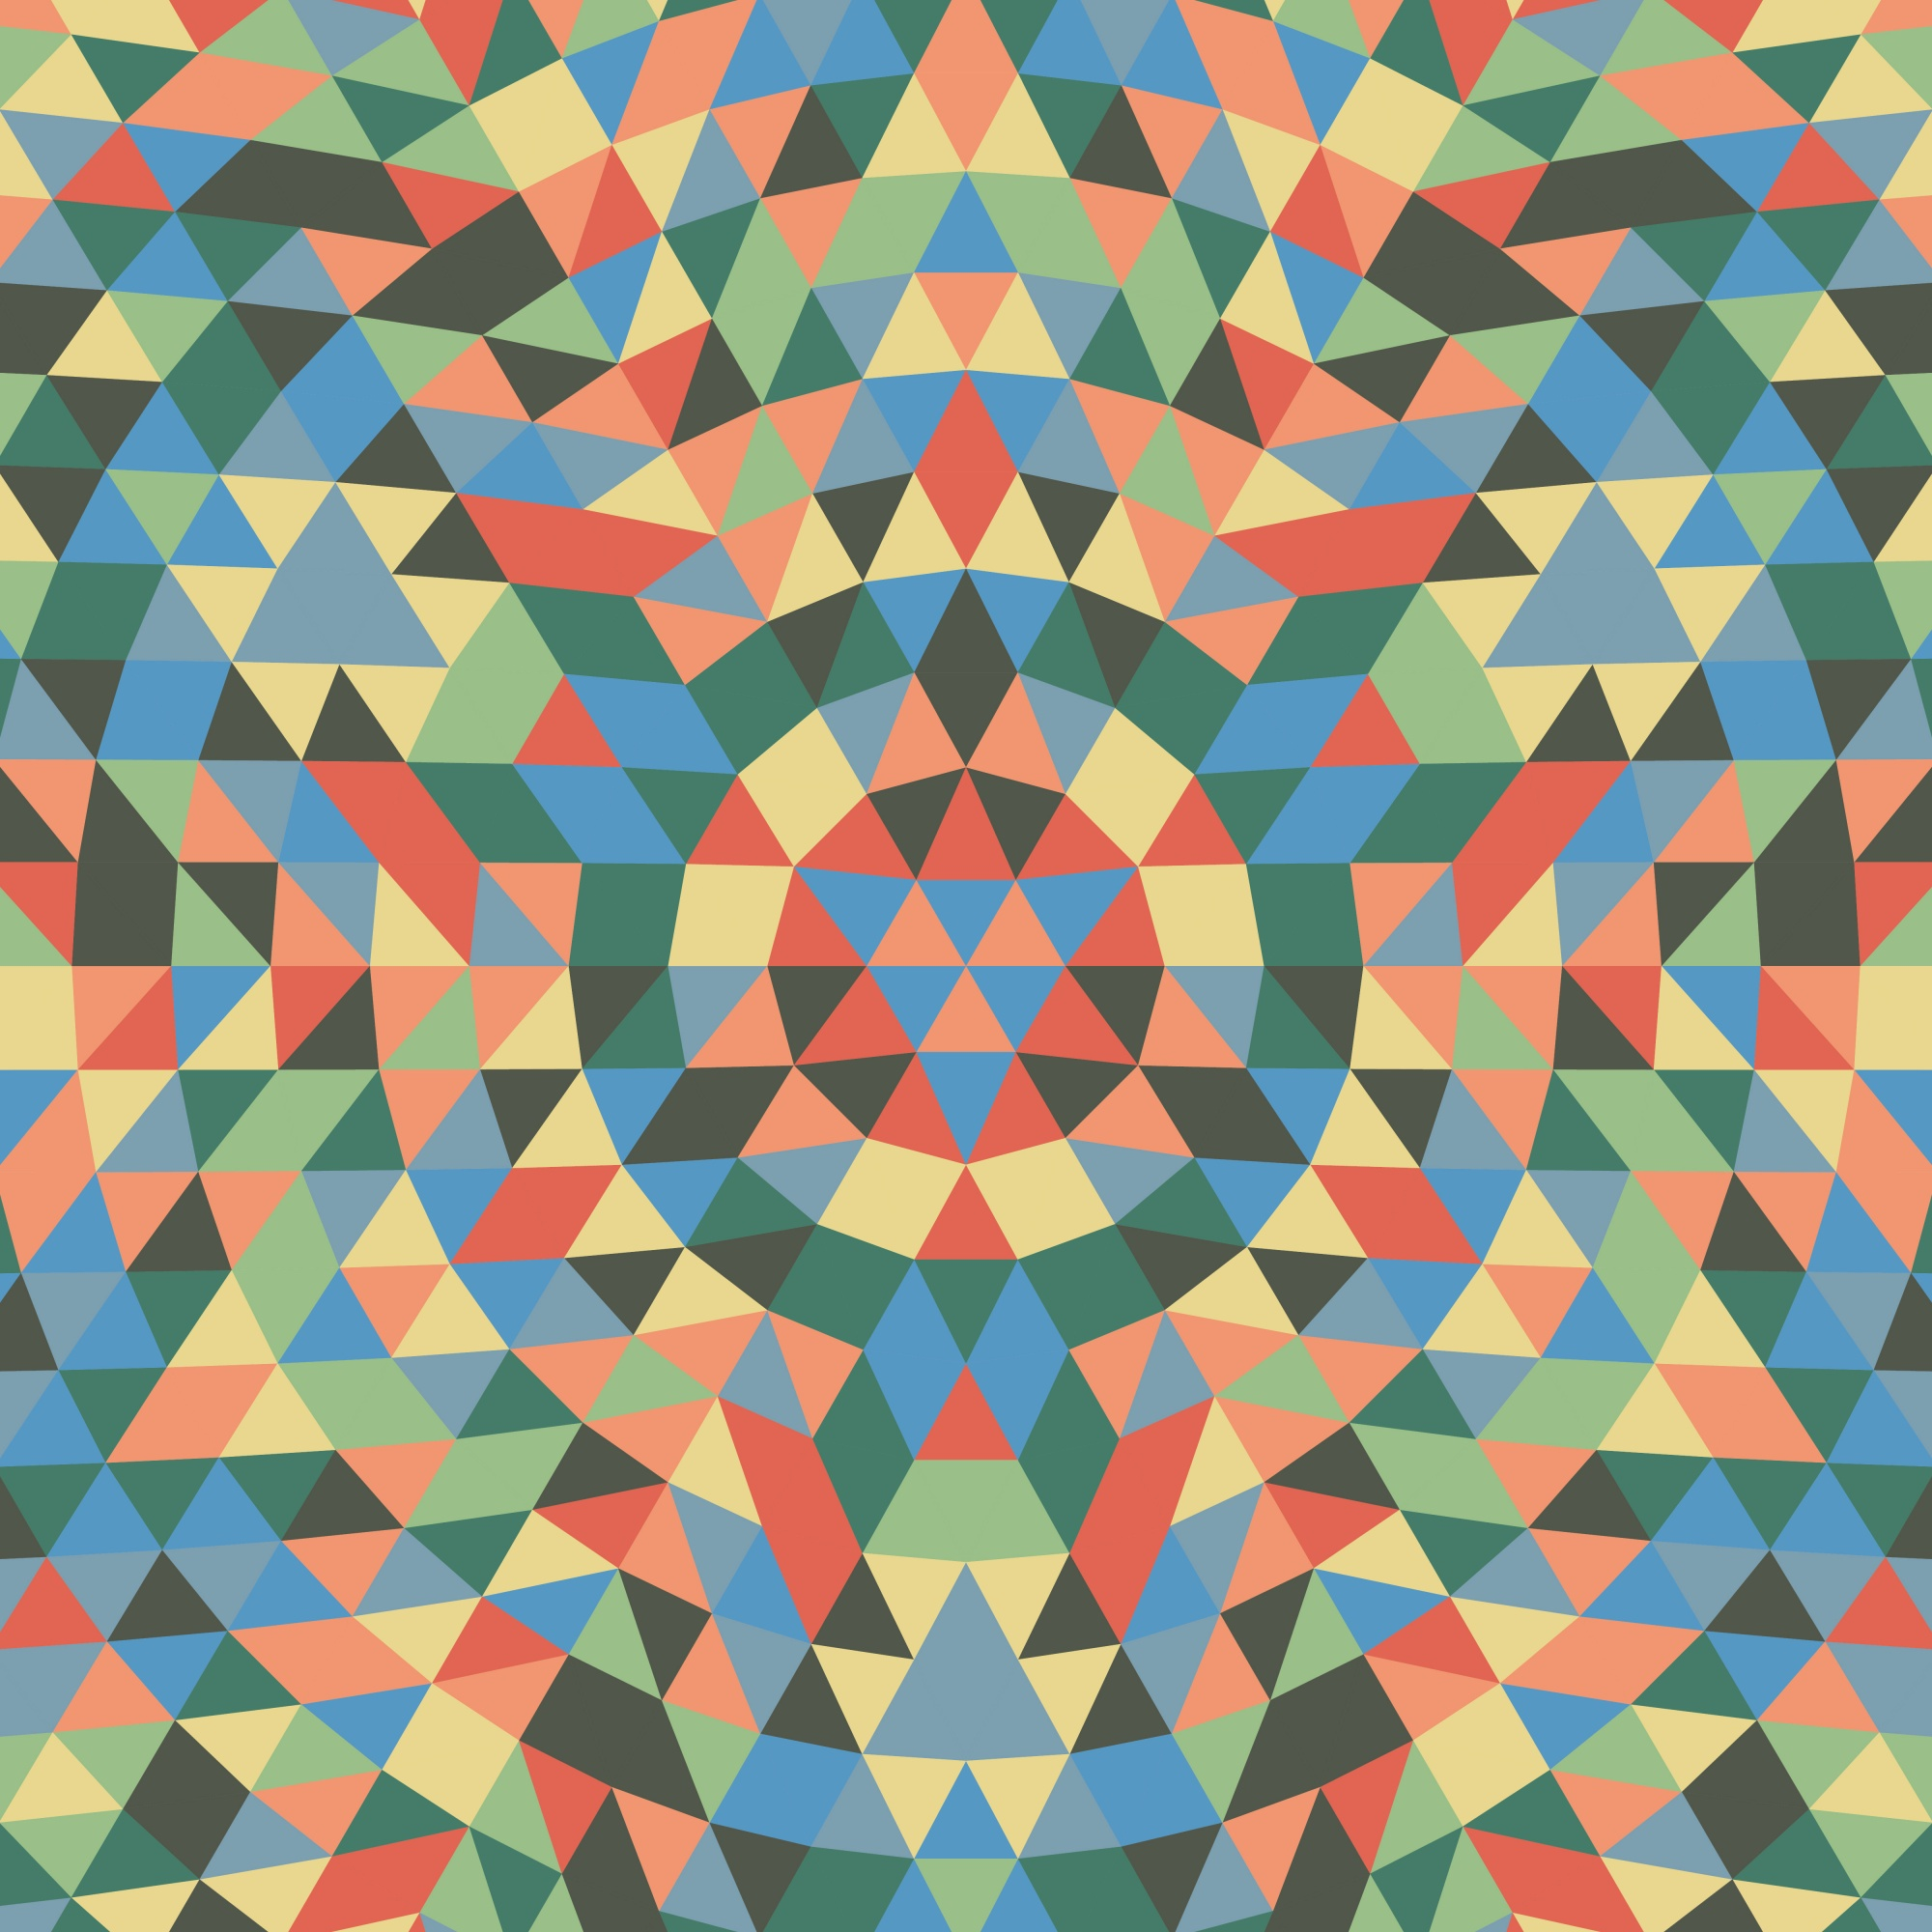 Round geometrical triangle mandala background - symmetrical vector pattern design from colorful triangles